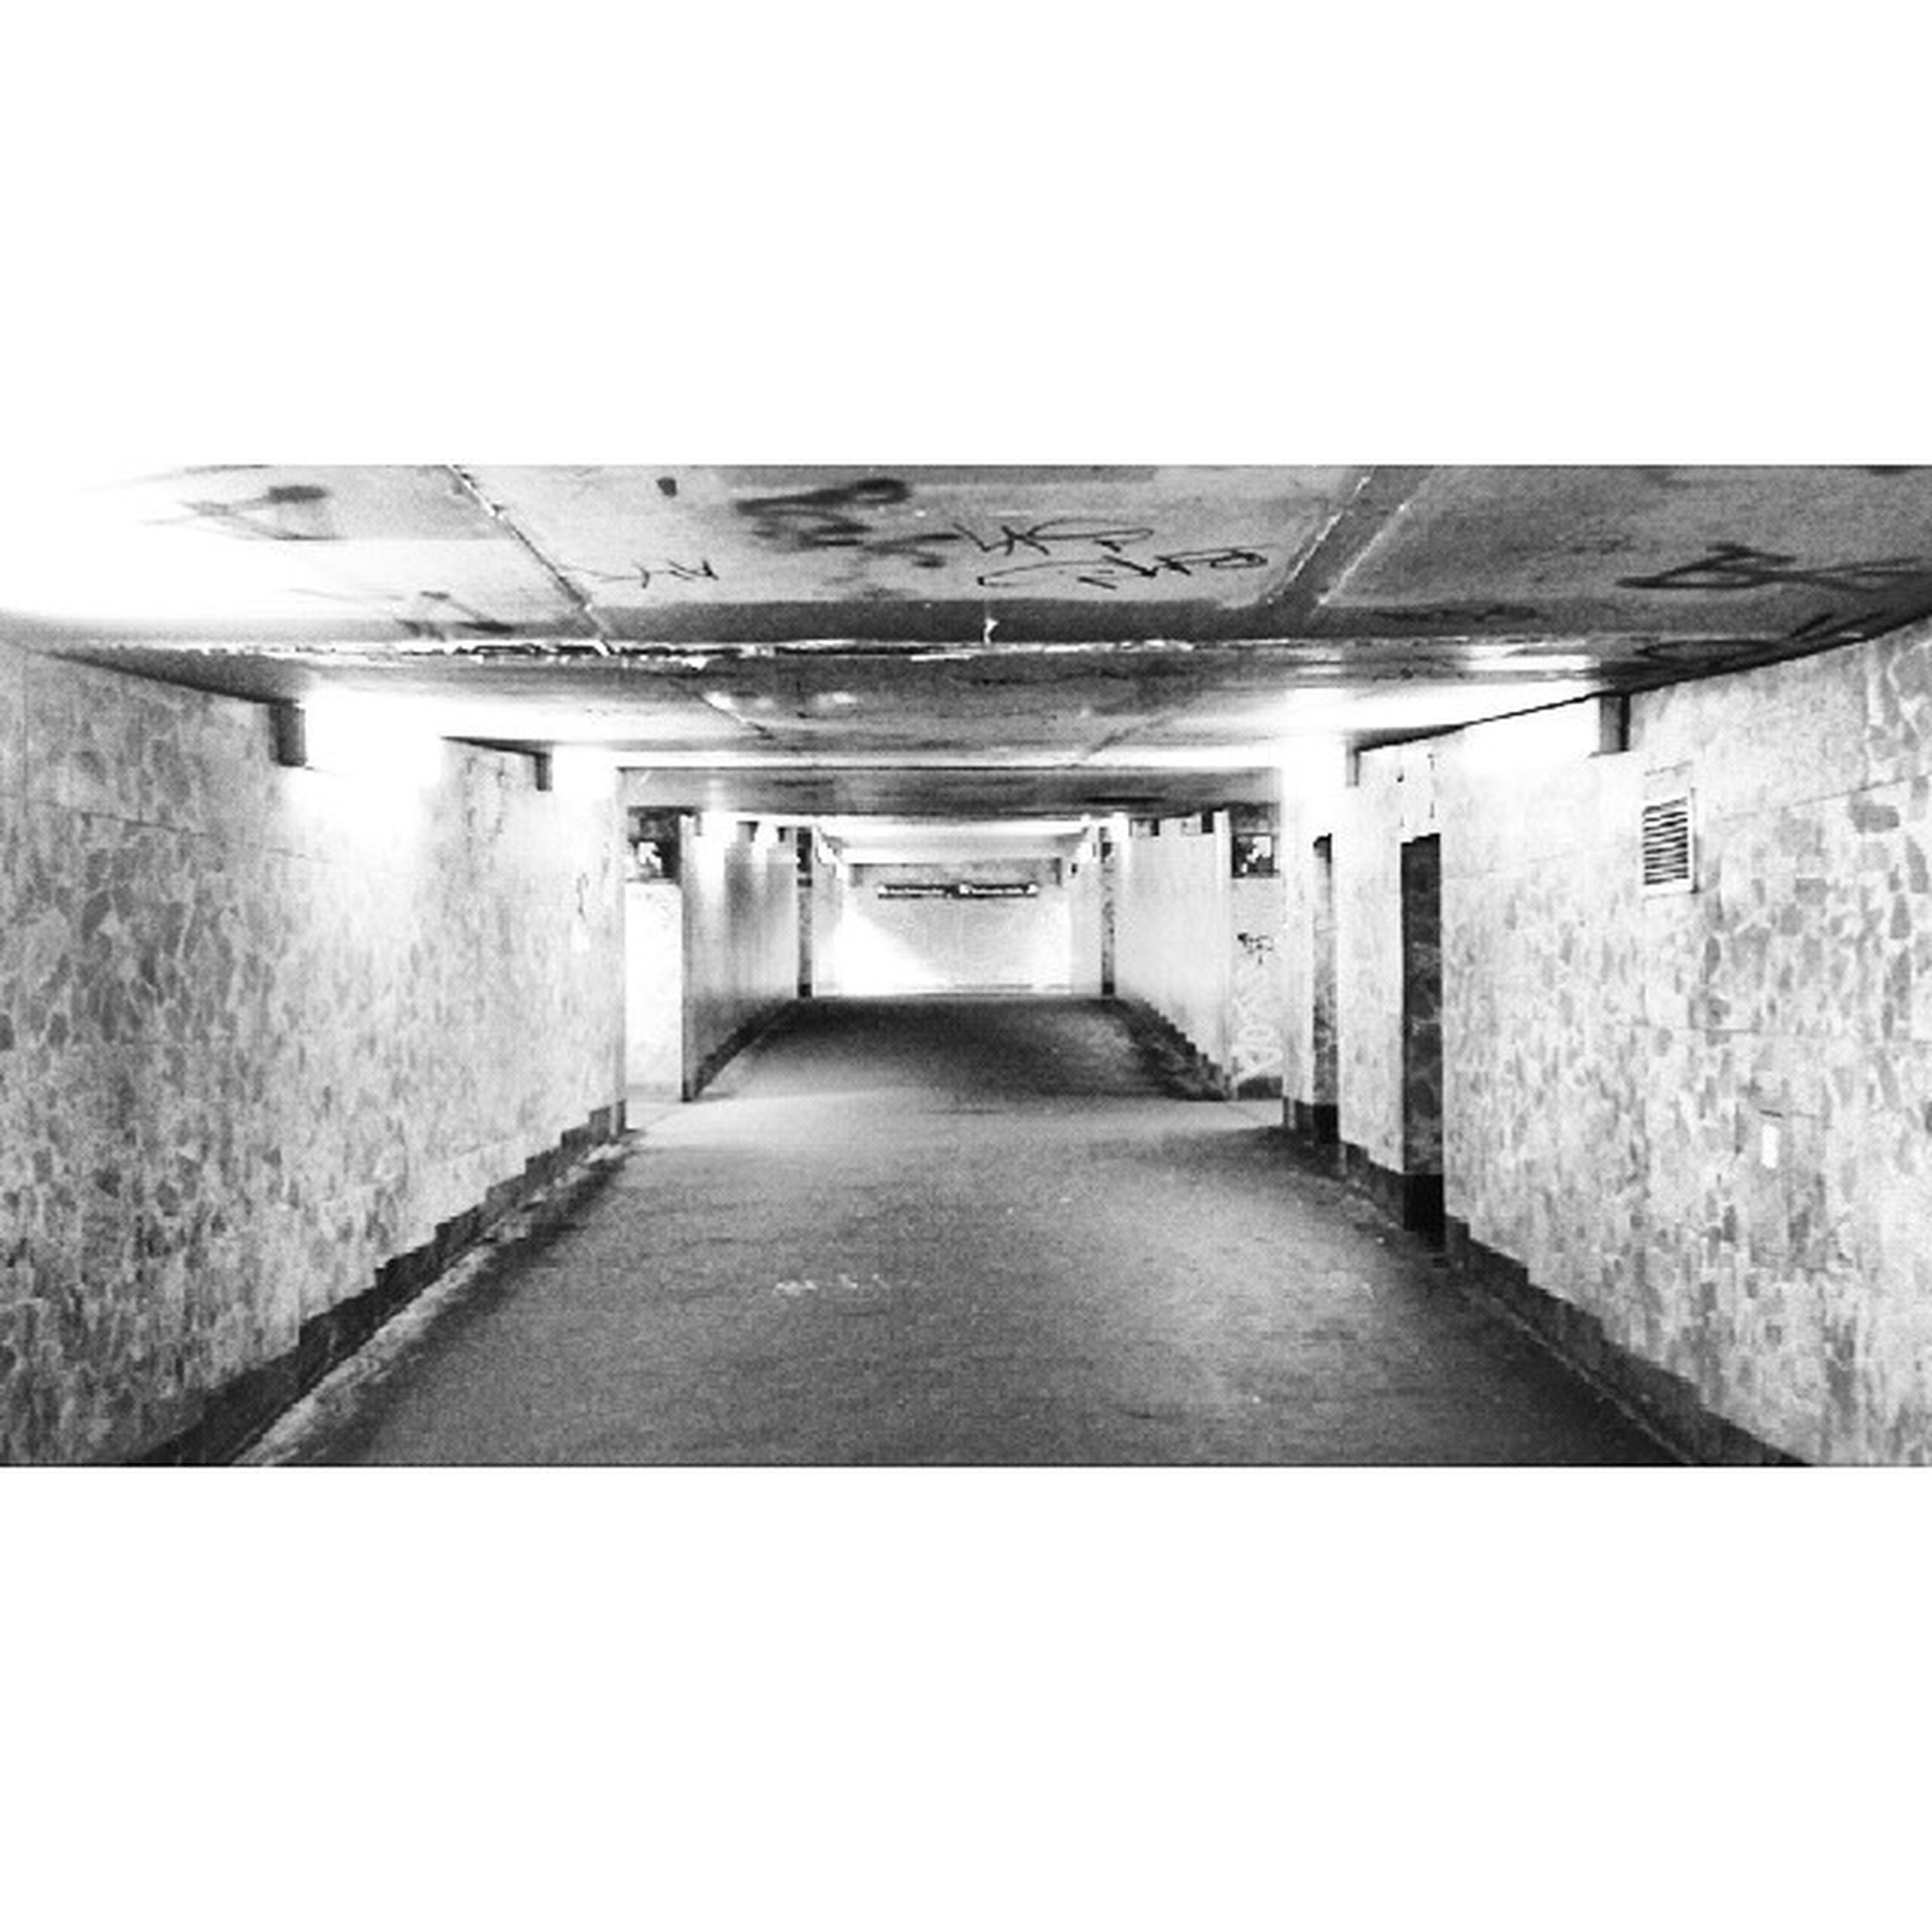 the way forward, architecture, built structure, diminishing perspective, indoors, corridor, vanishing point, empty, narrow, wall - building feature, long, building exterior, building, ceiling, walkway, absence, wall, no people, tunnel, flooring